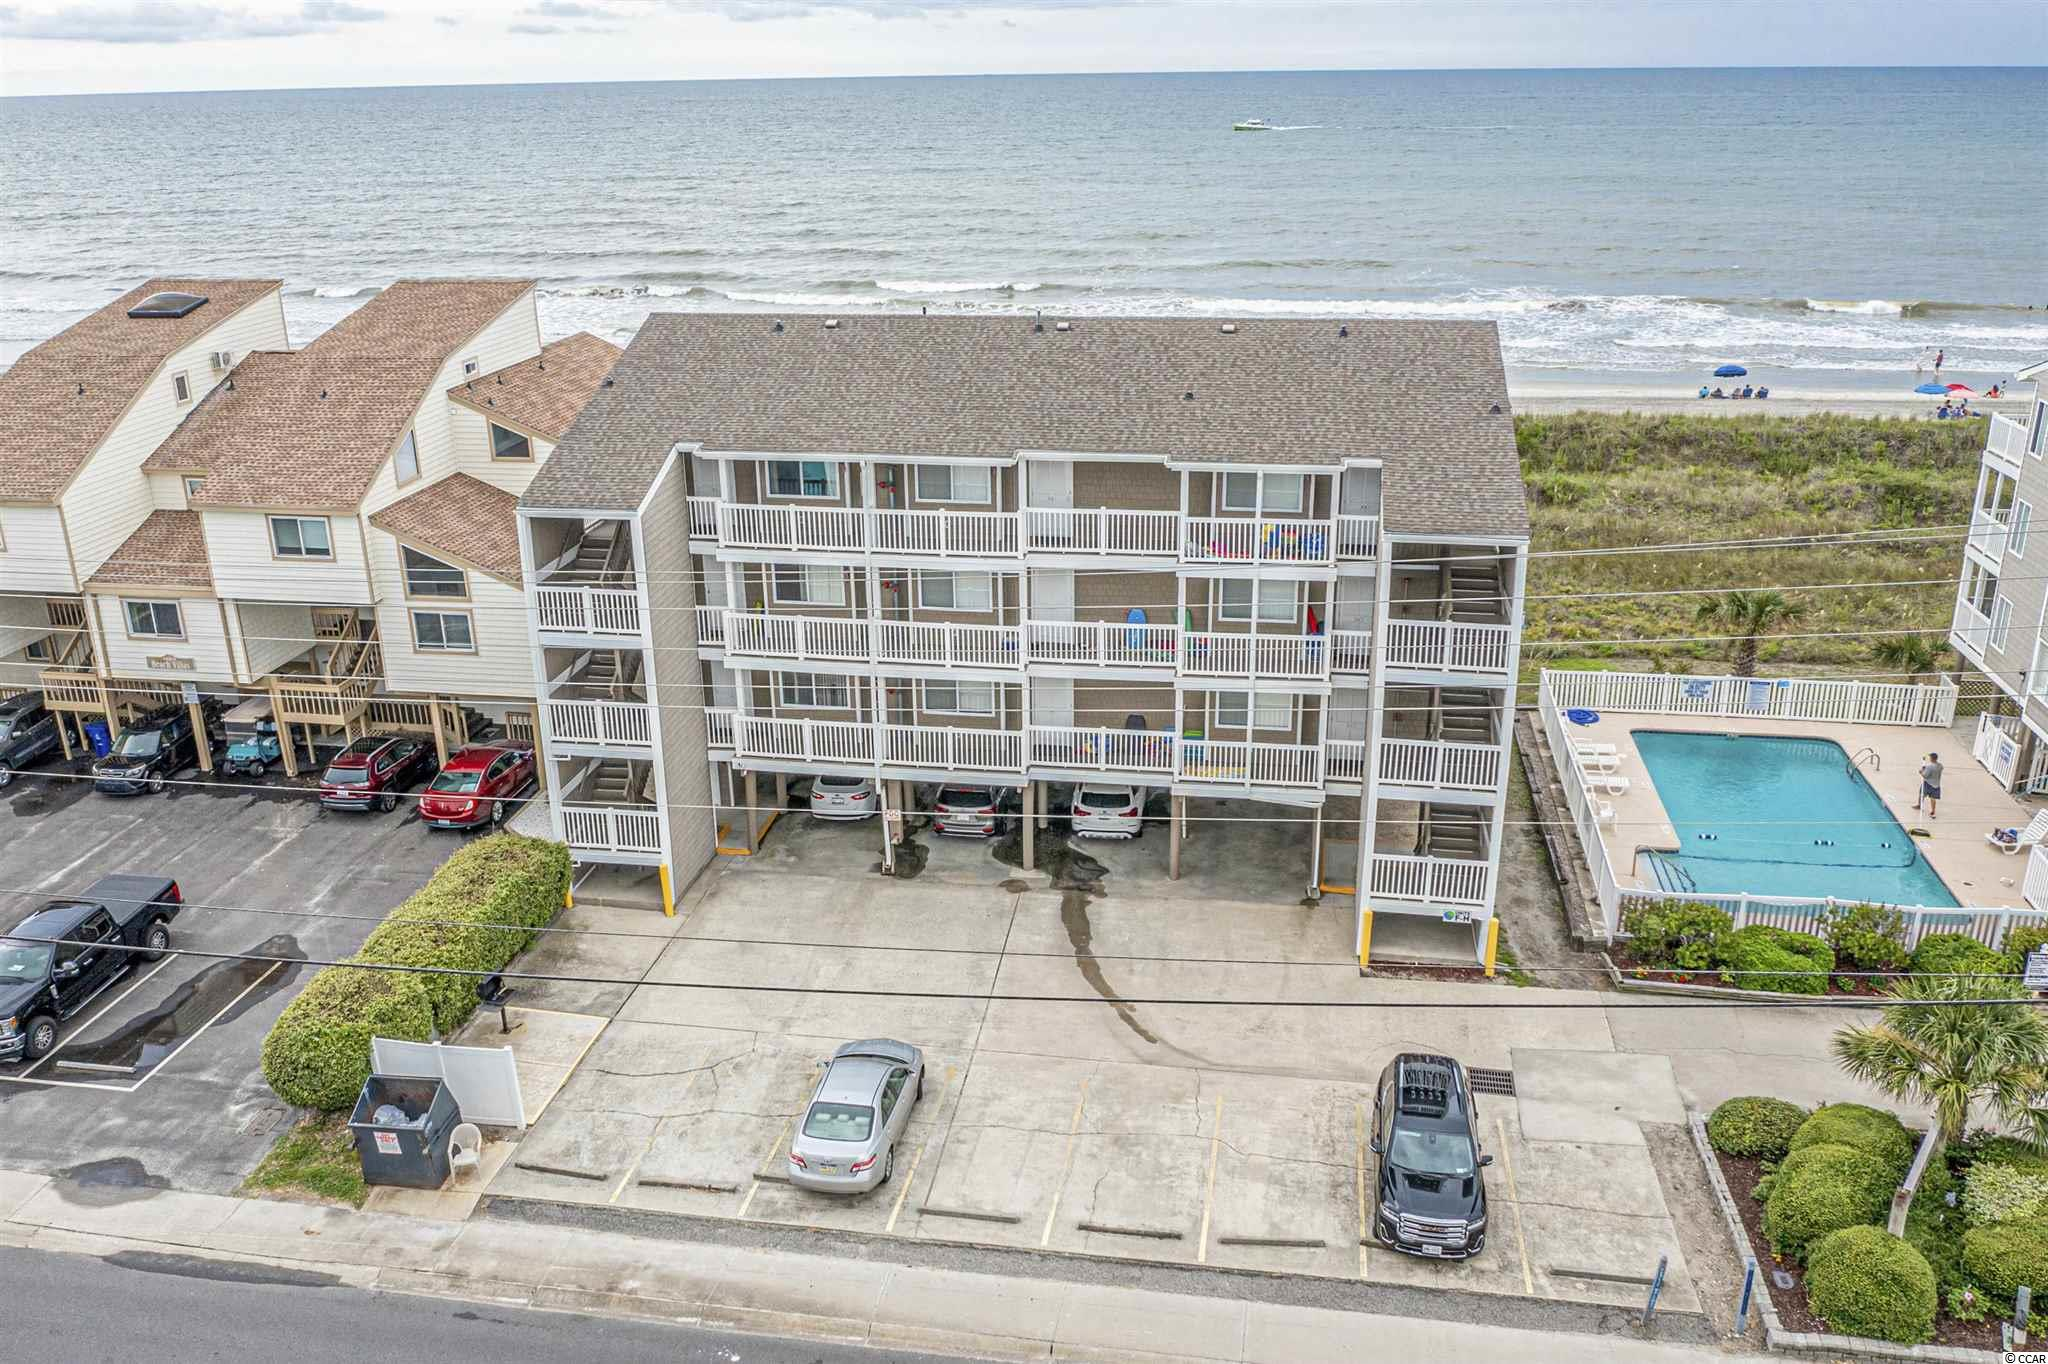 Check out the views from this top floor end unit in Raintree Villas! This two bedroom, two bathroom condo has been used as a secondary home and well taken care of over the years. Raintree Villas is a small quiet oceanfront community that's conveniently located near all North Myrtle Beach has to offer. Don't miss out!